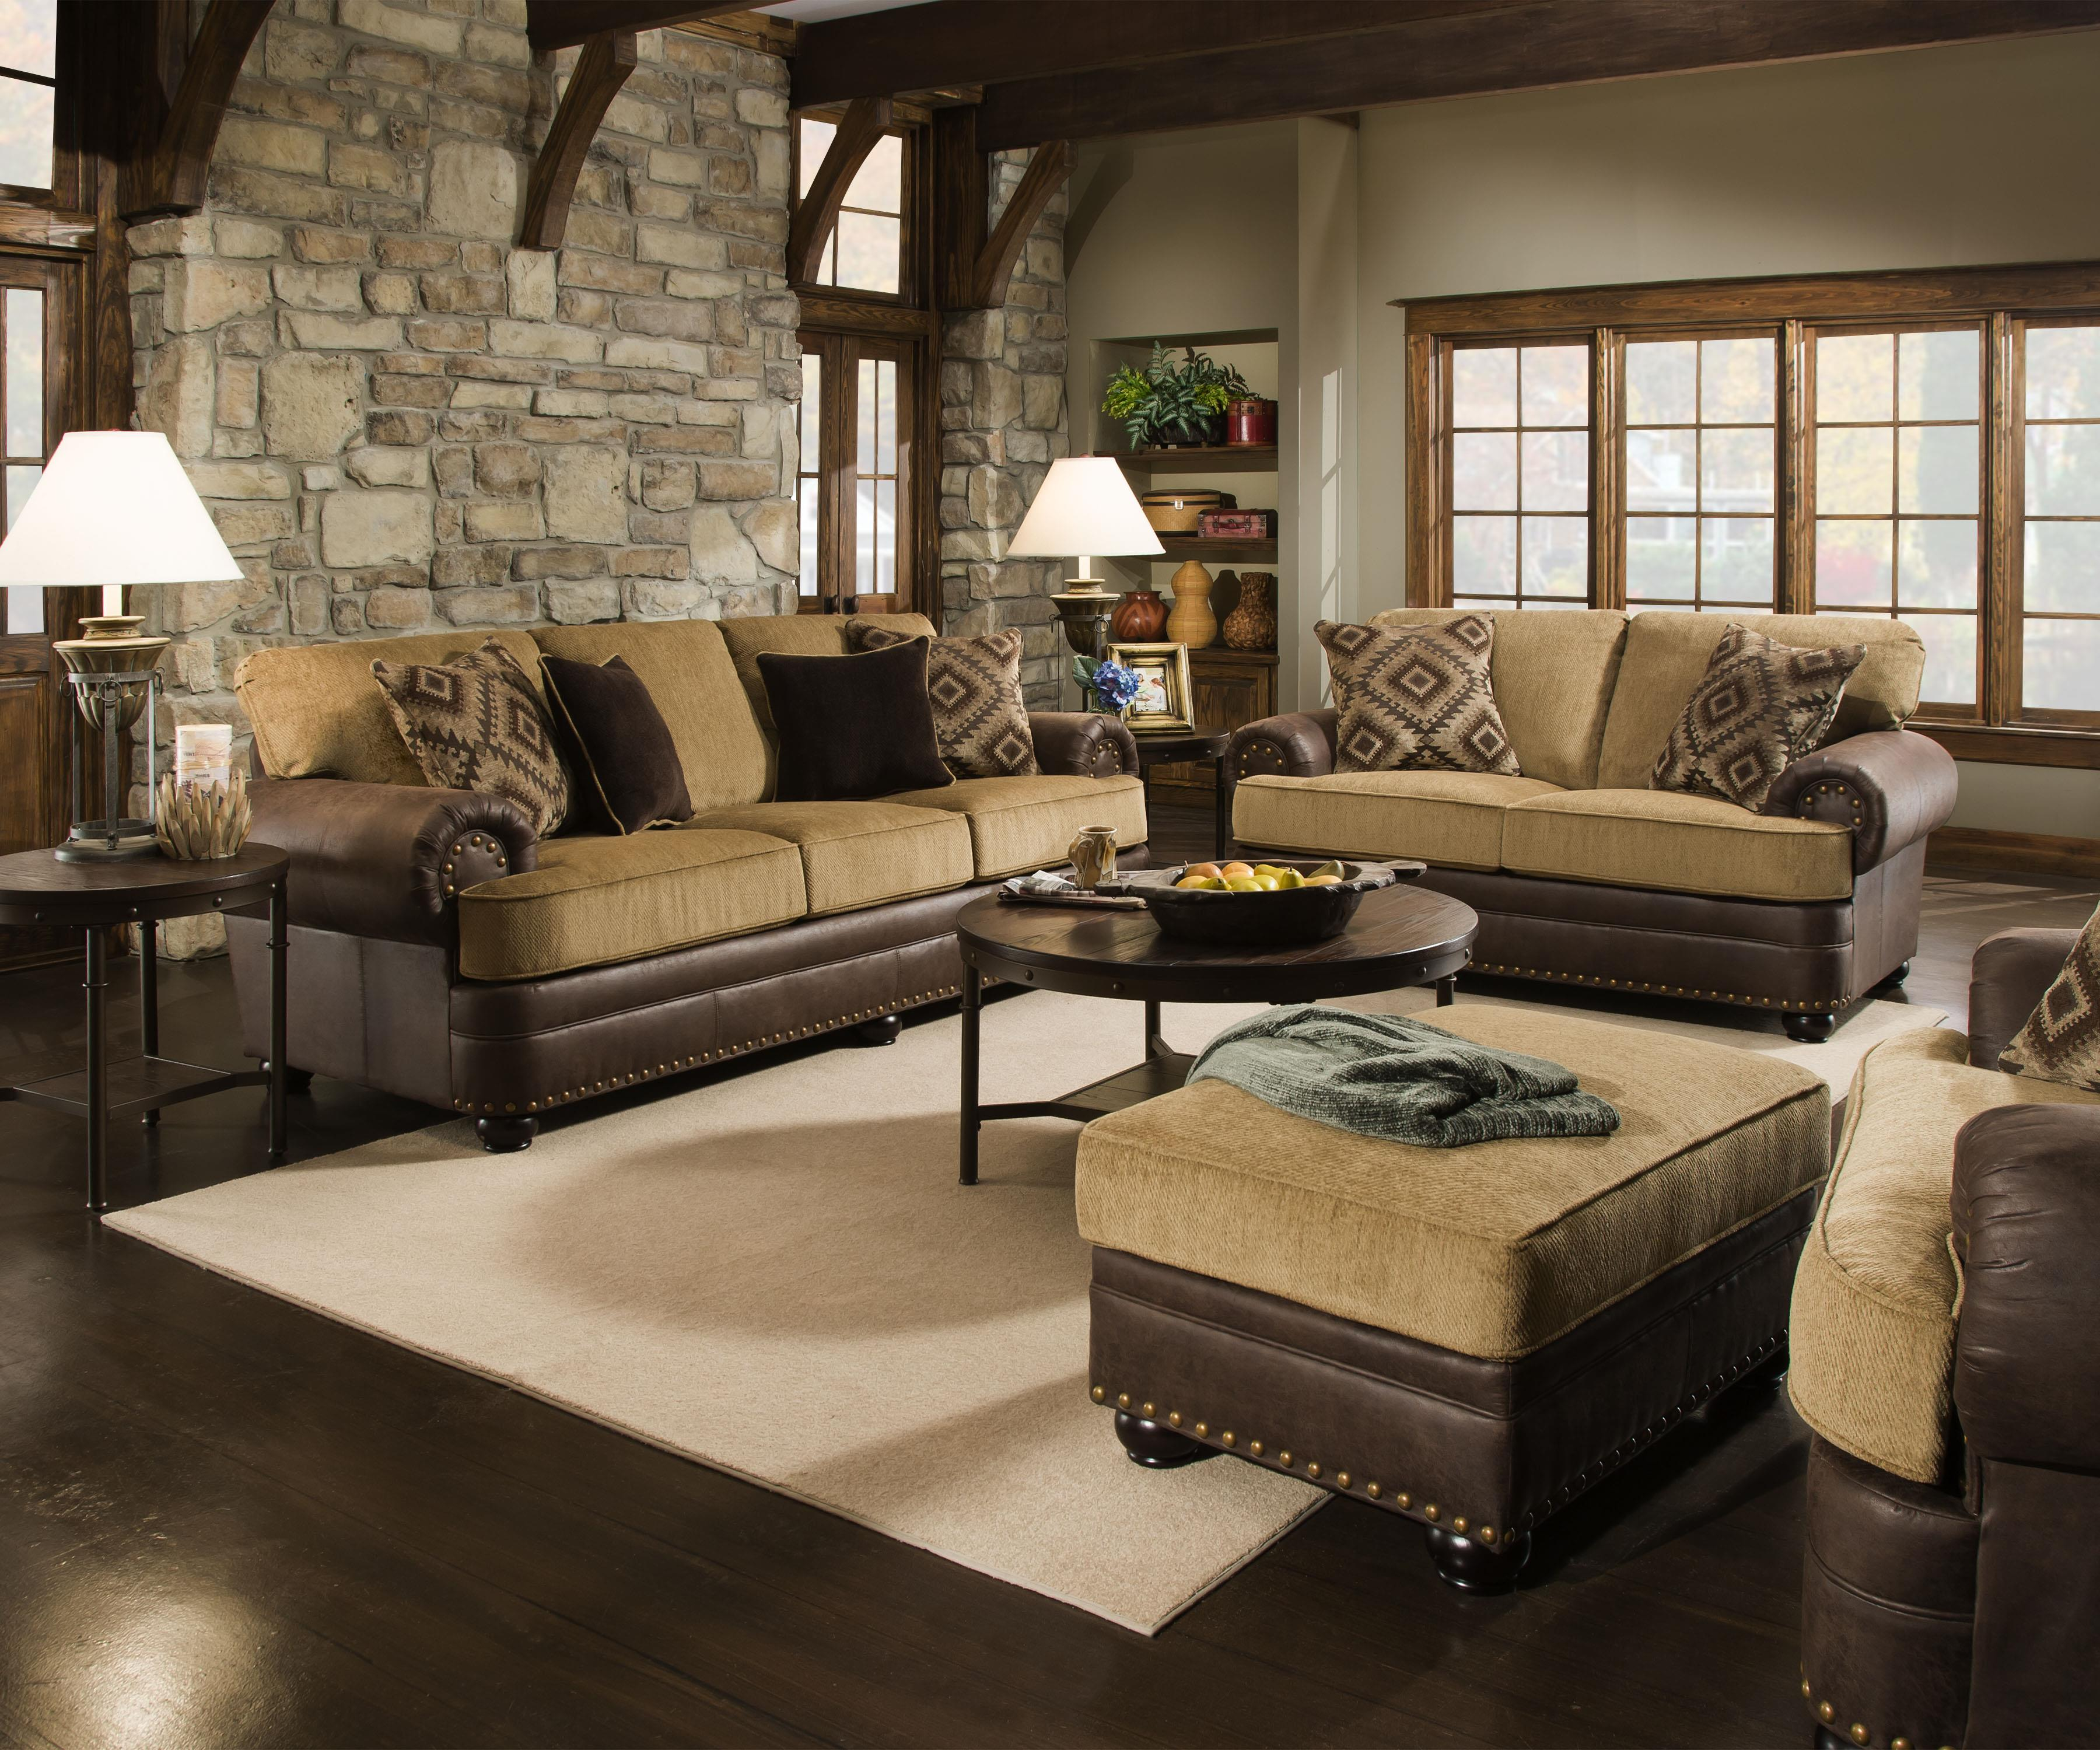 United furniture industries 7541 rustic style sofa with - Simmons living room furniture sets ...